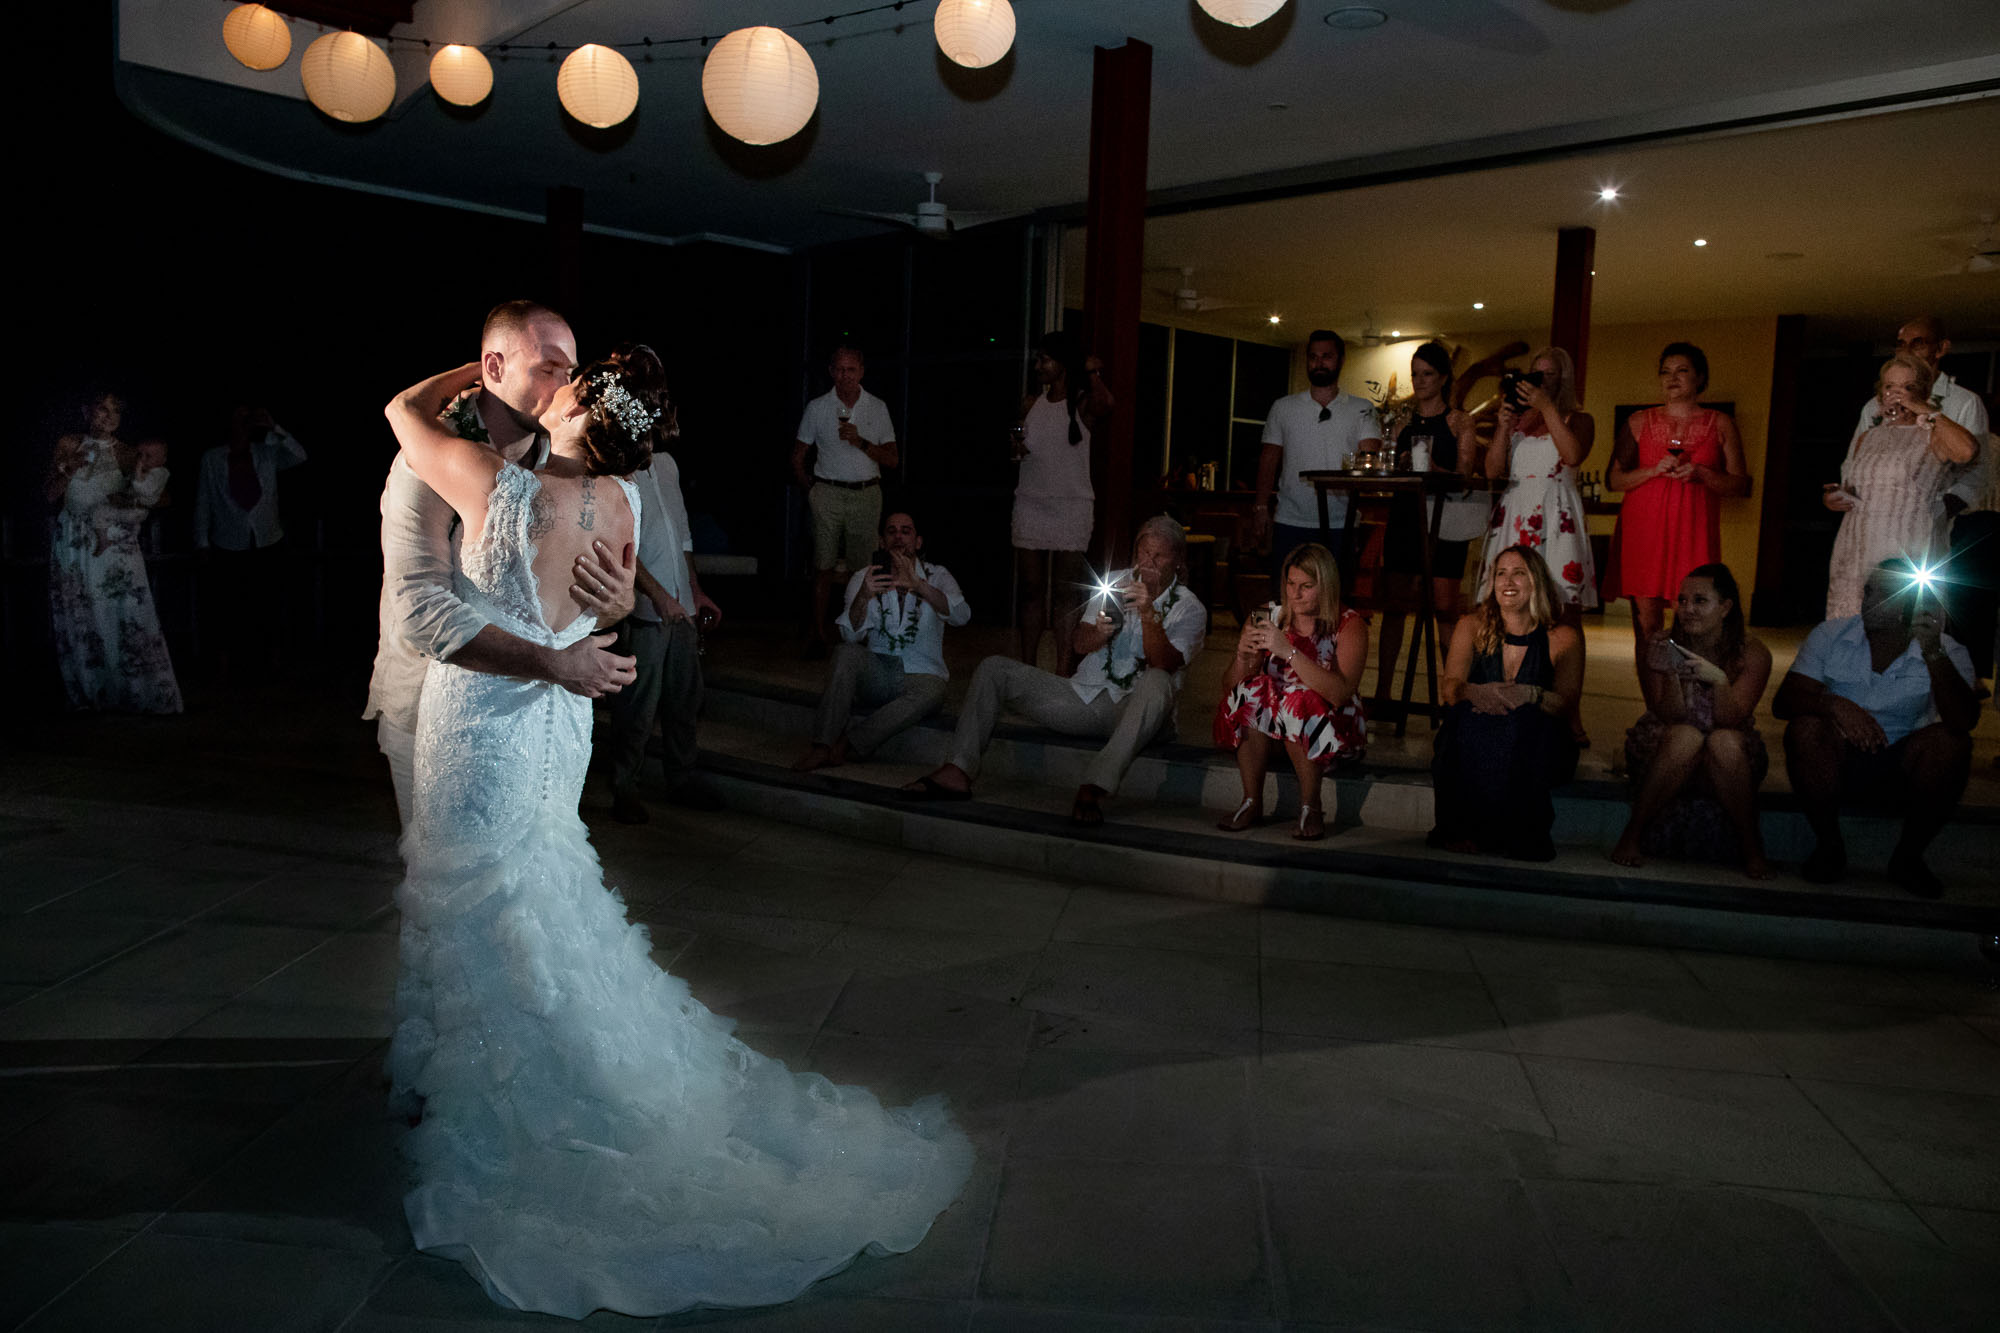 An epic shot of the bride and groom's first dance